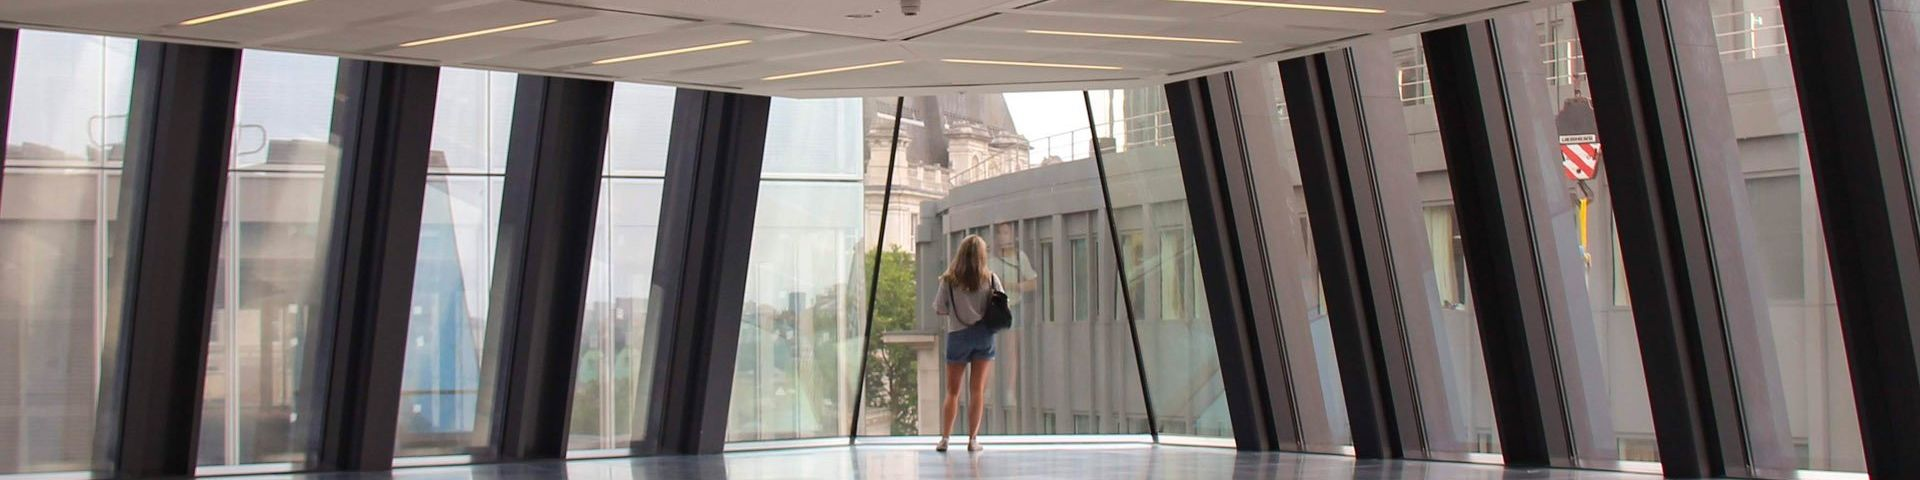 A woman with her back to the camera, standing on the floor of a glass office building